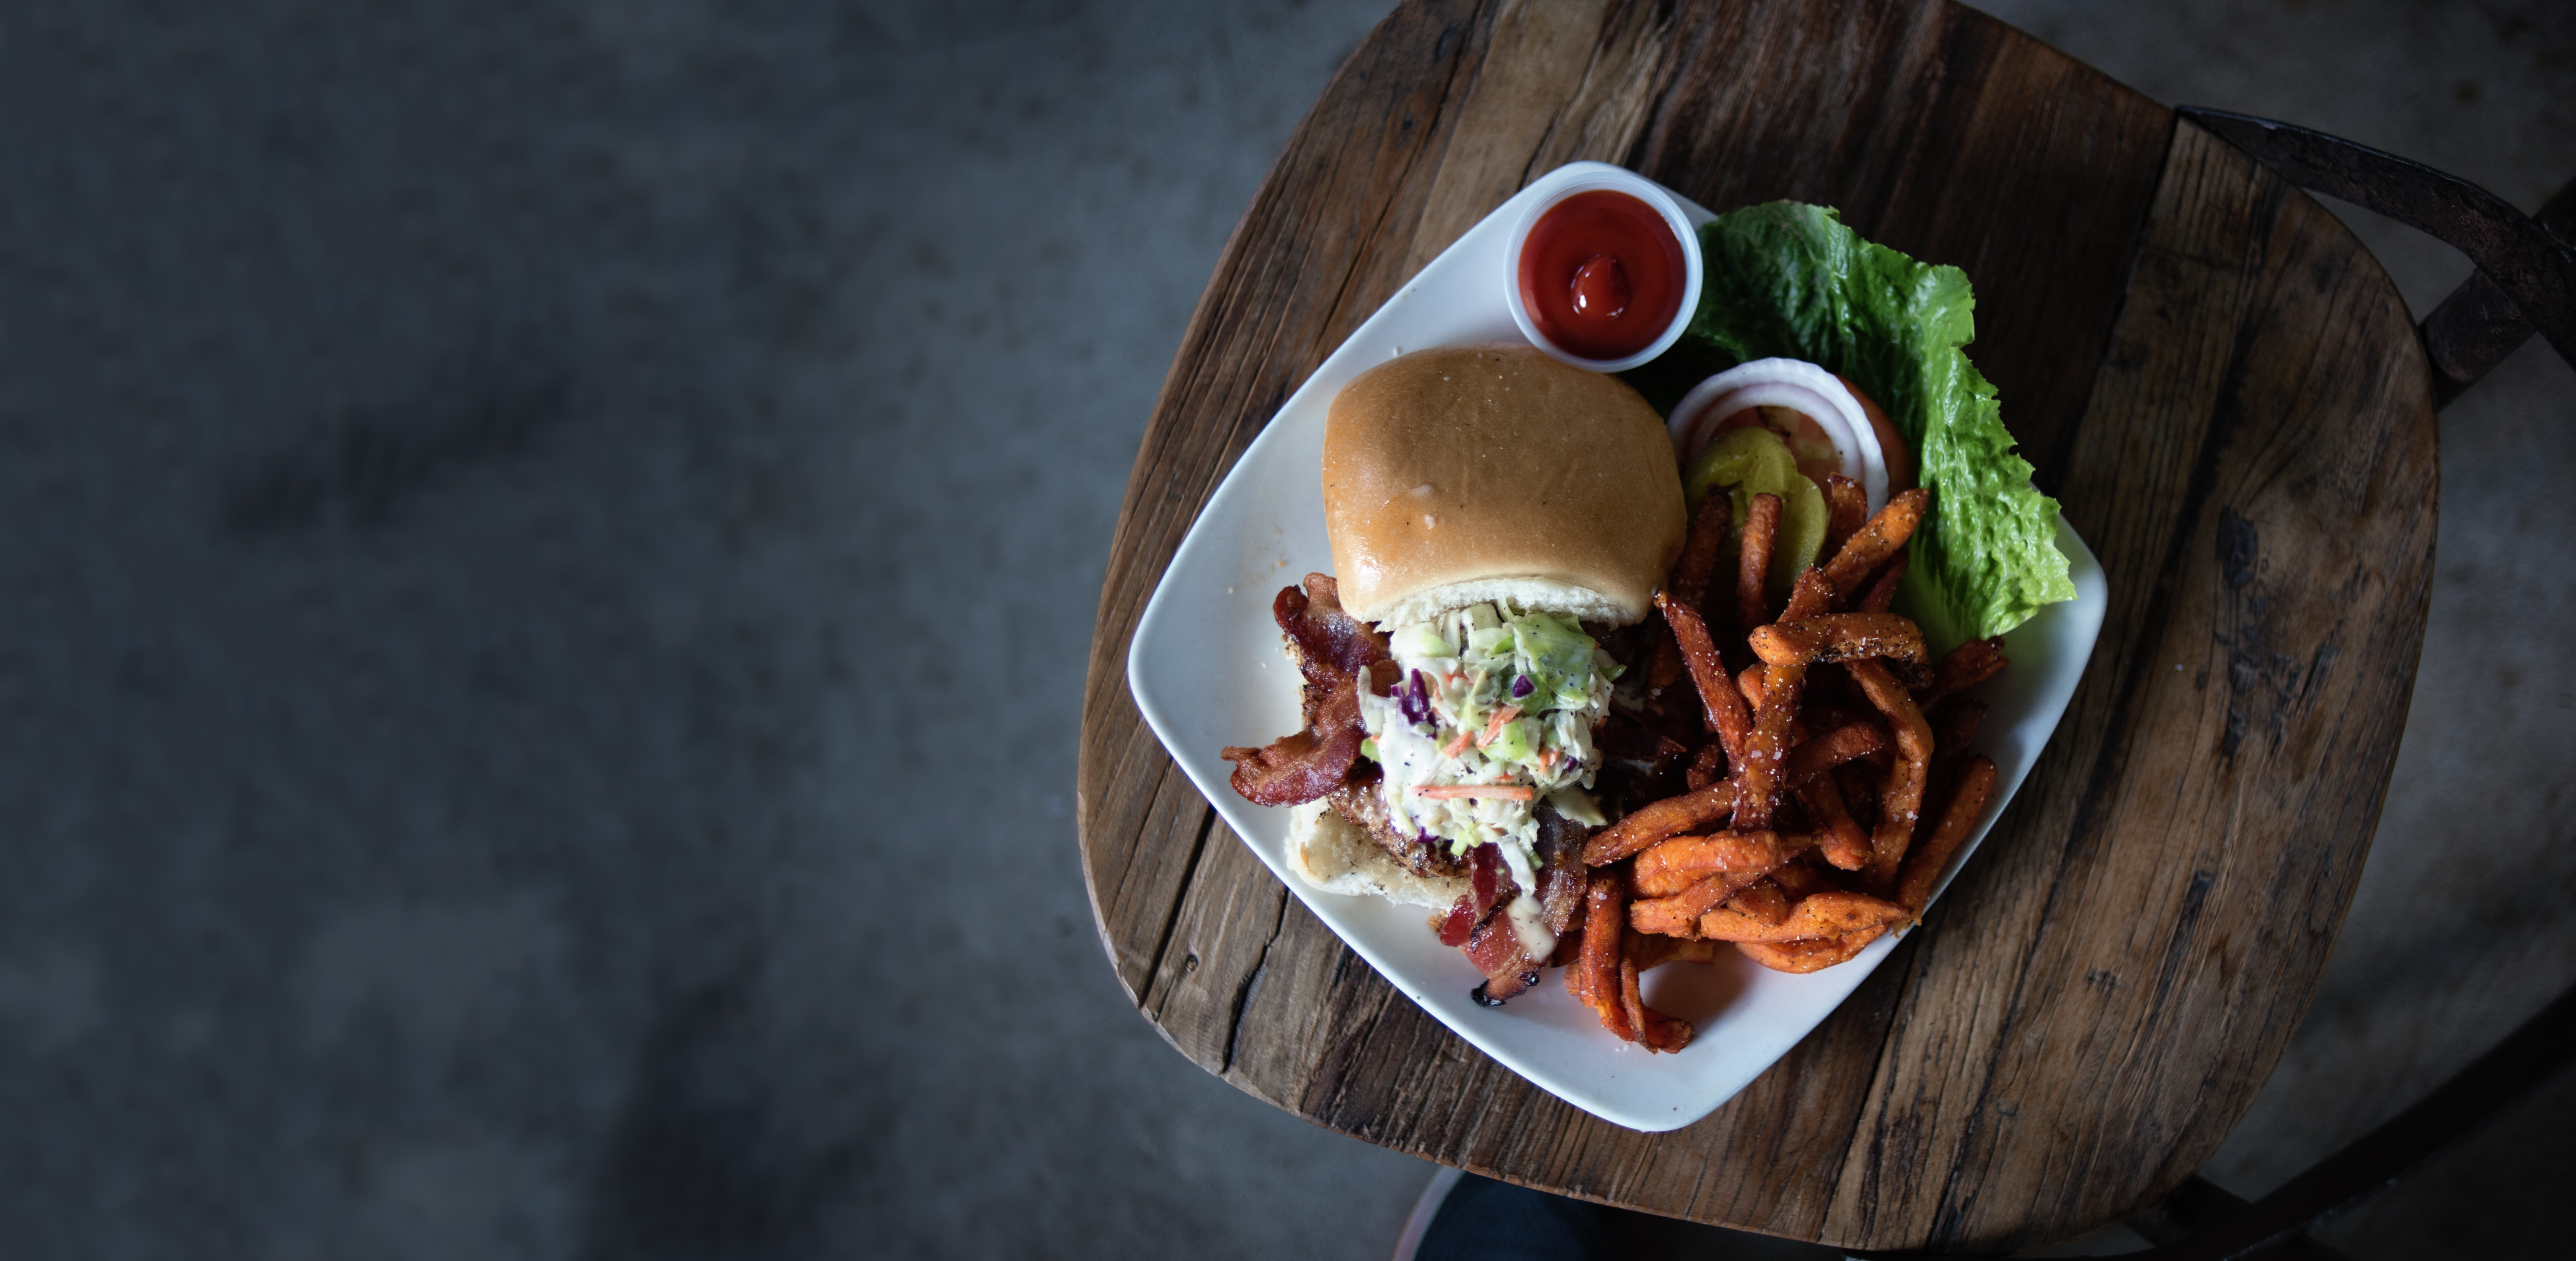 Overhead shot of a loaded burger with sweet potato fries